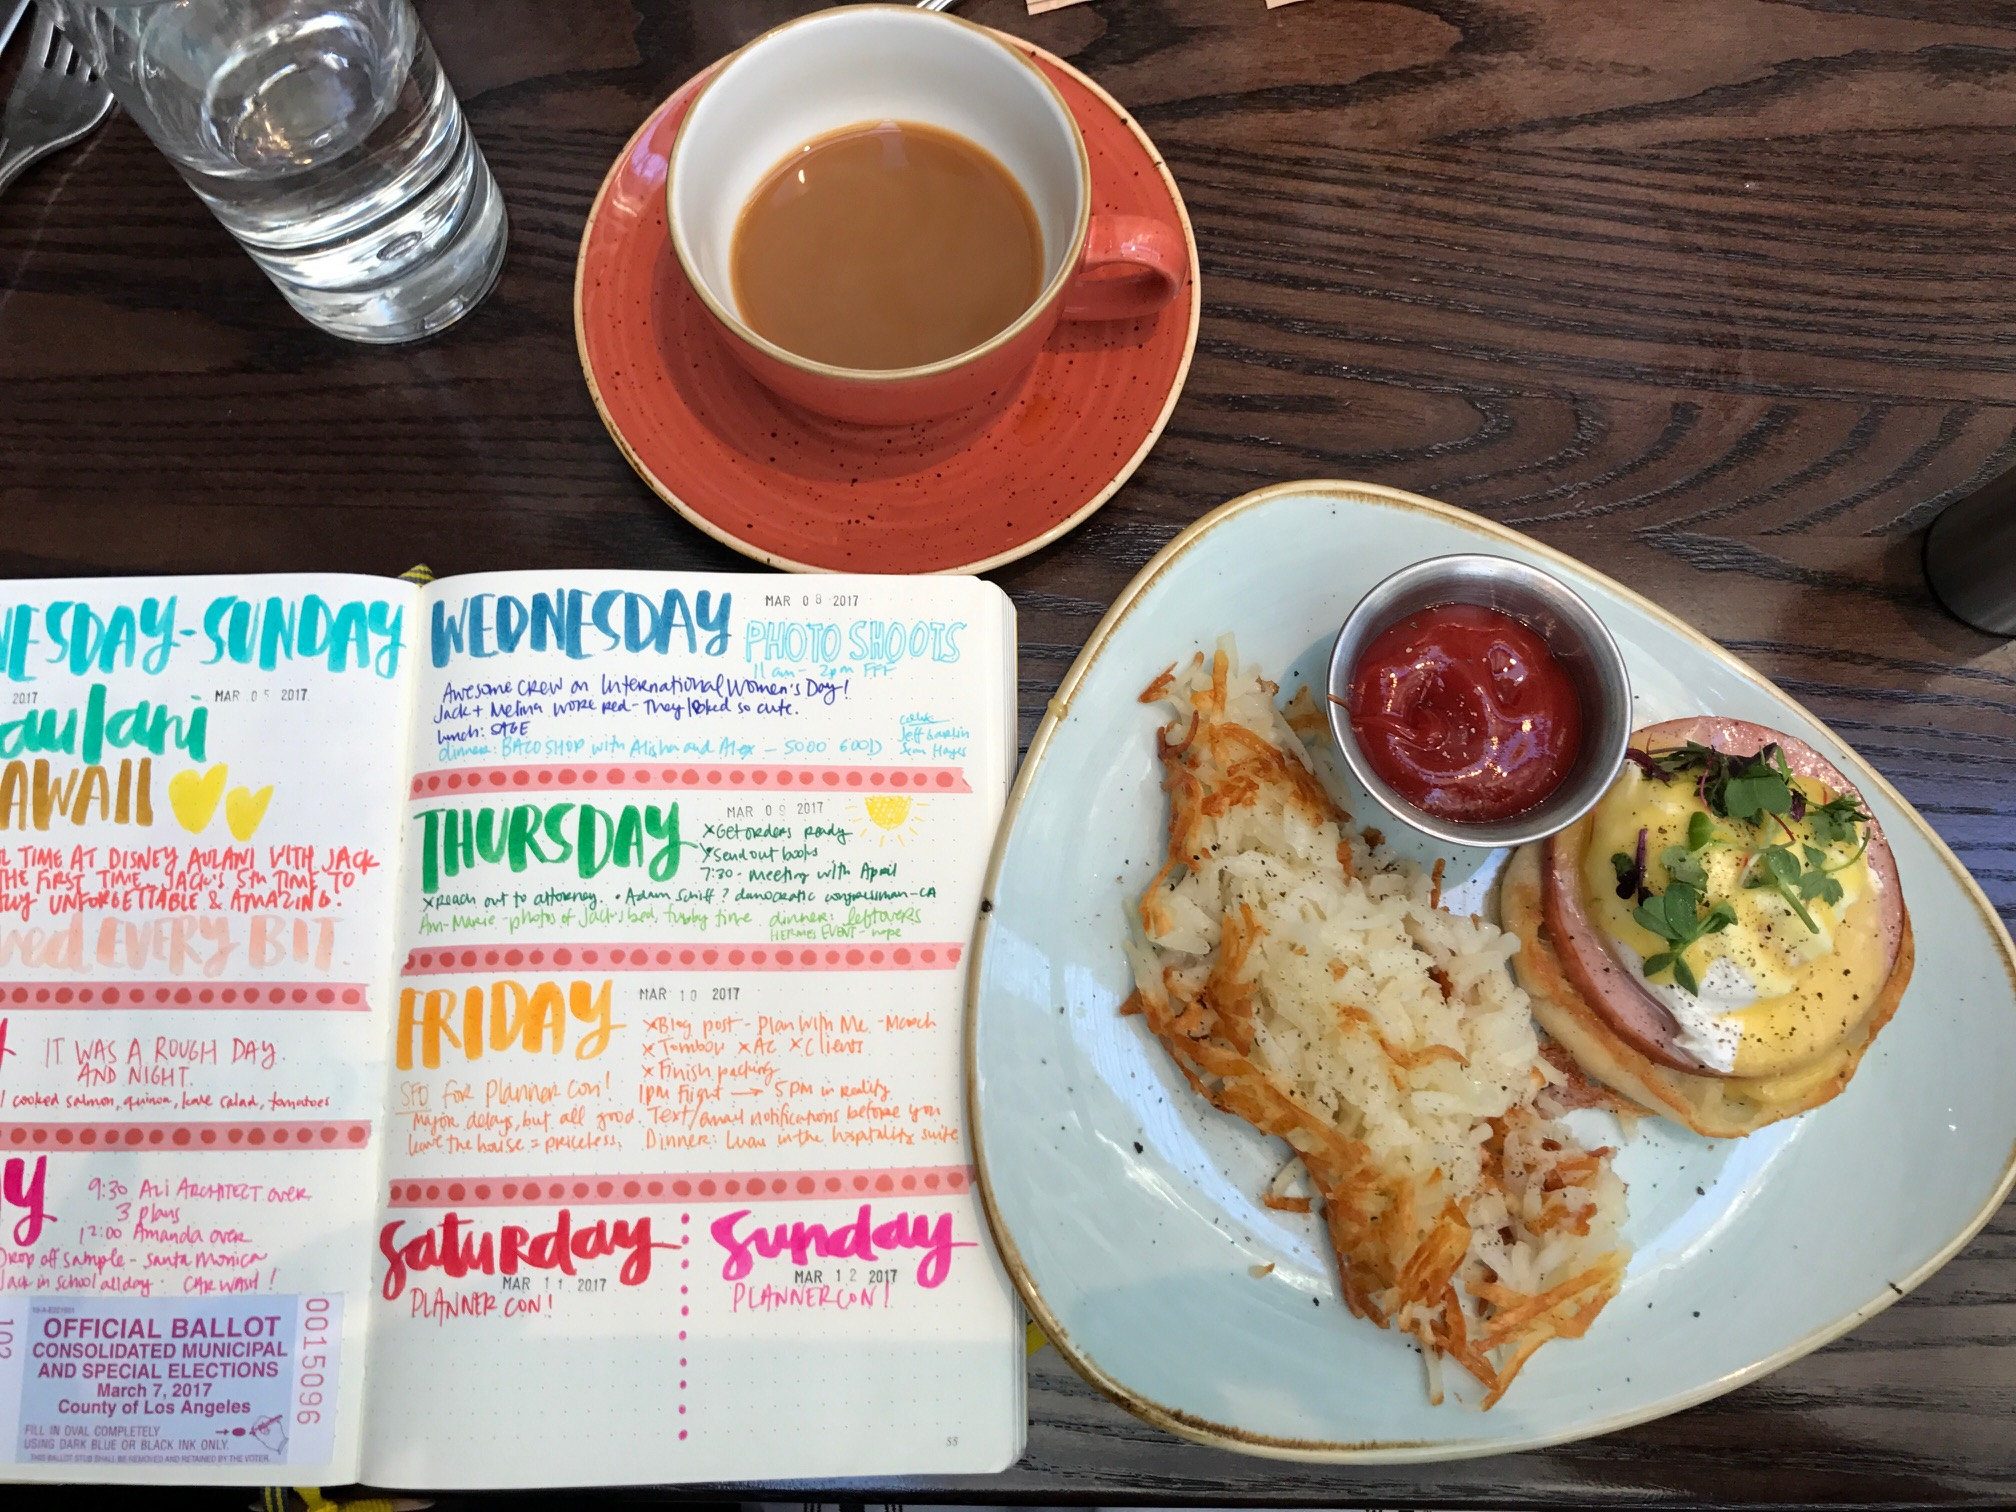 Bullet Journal and breakfast